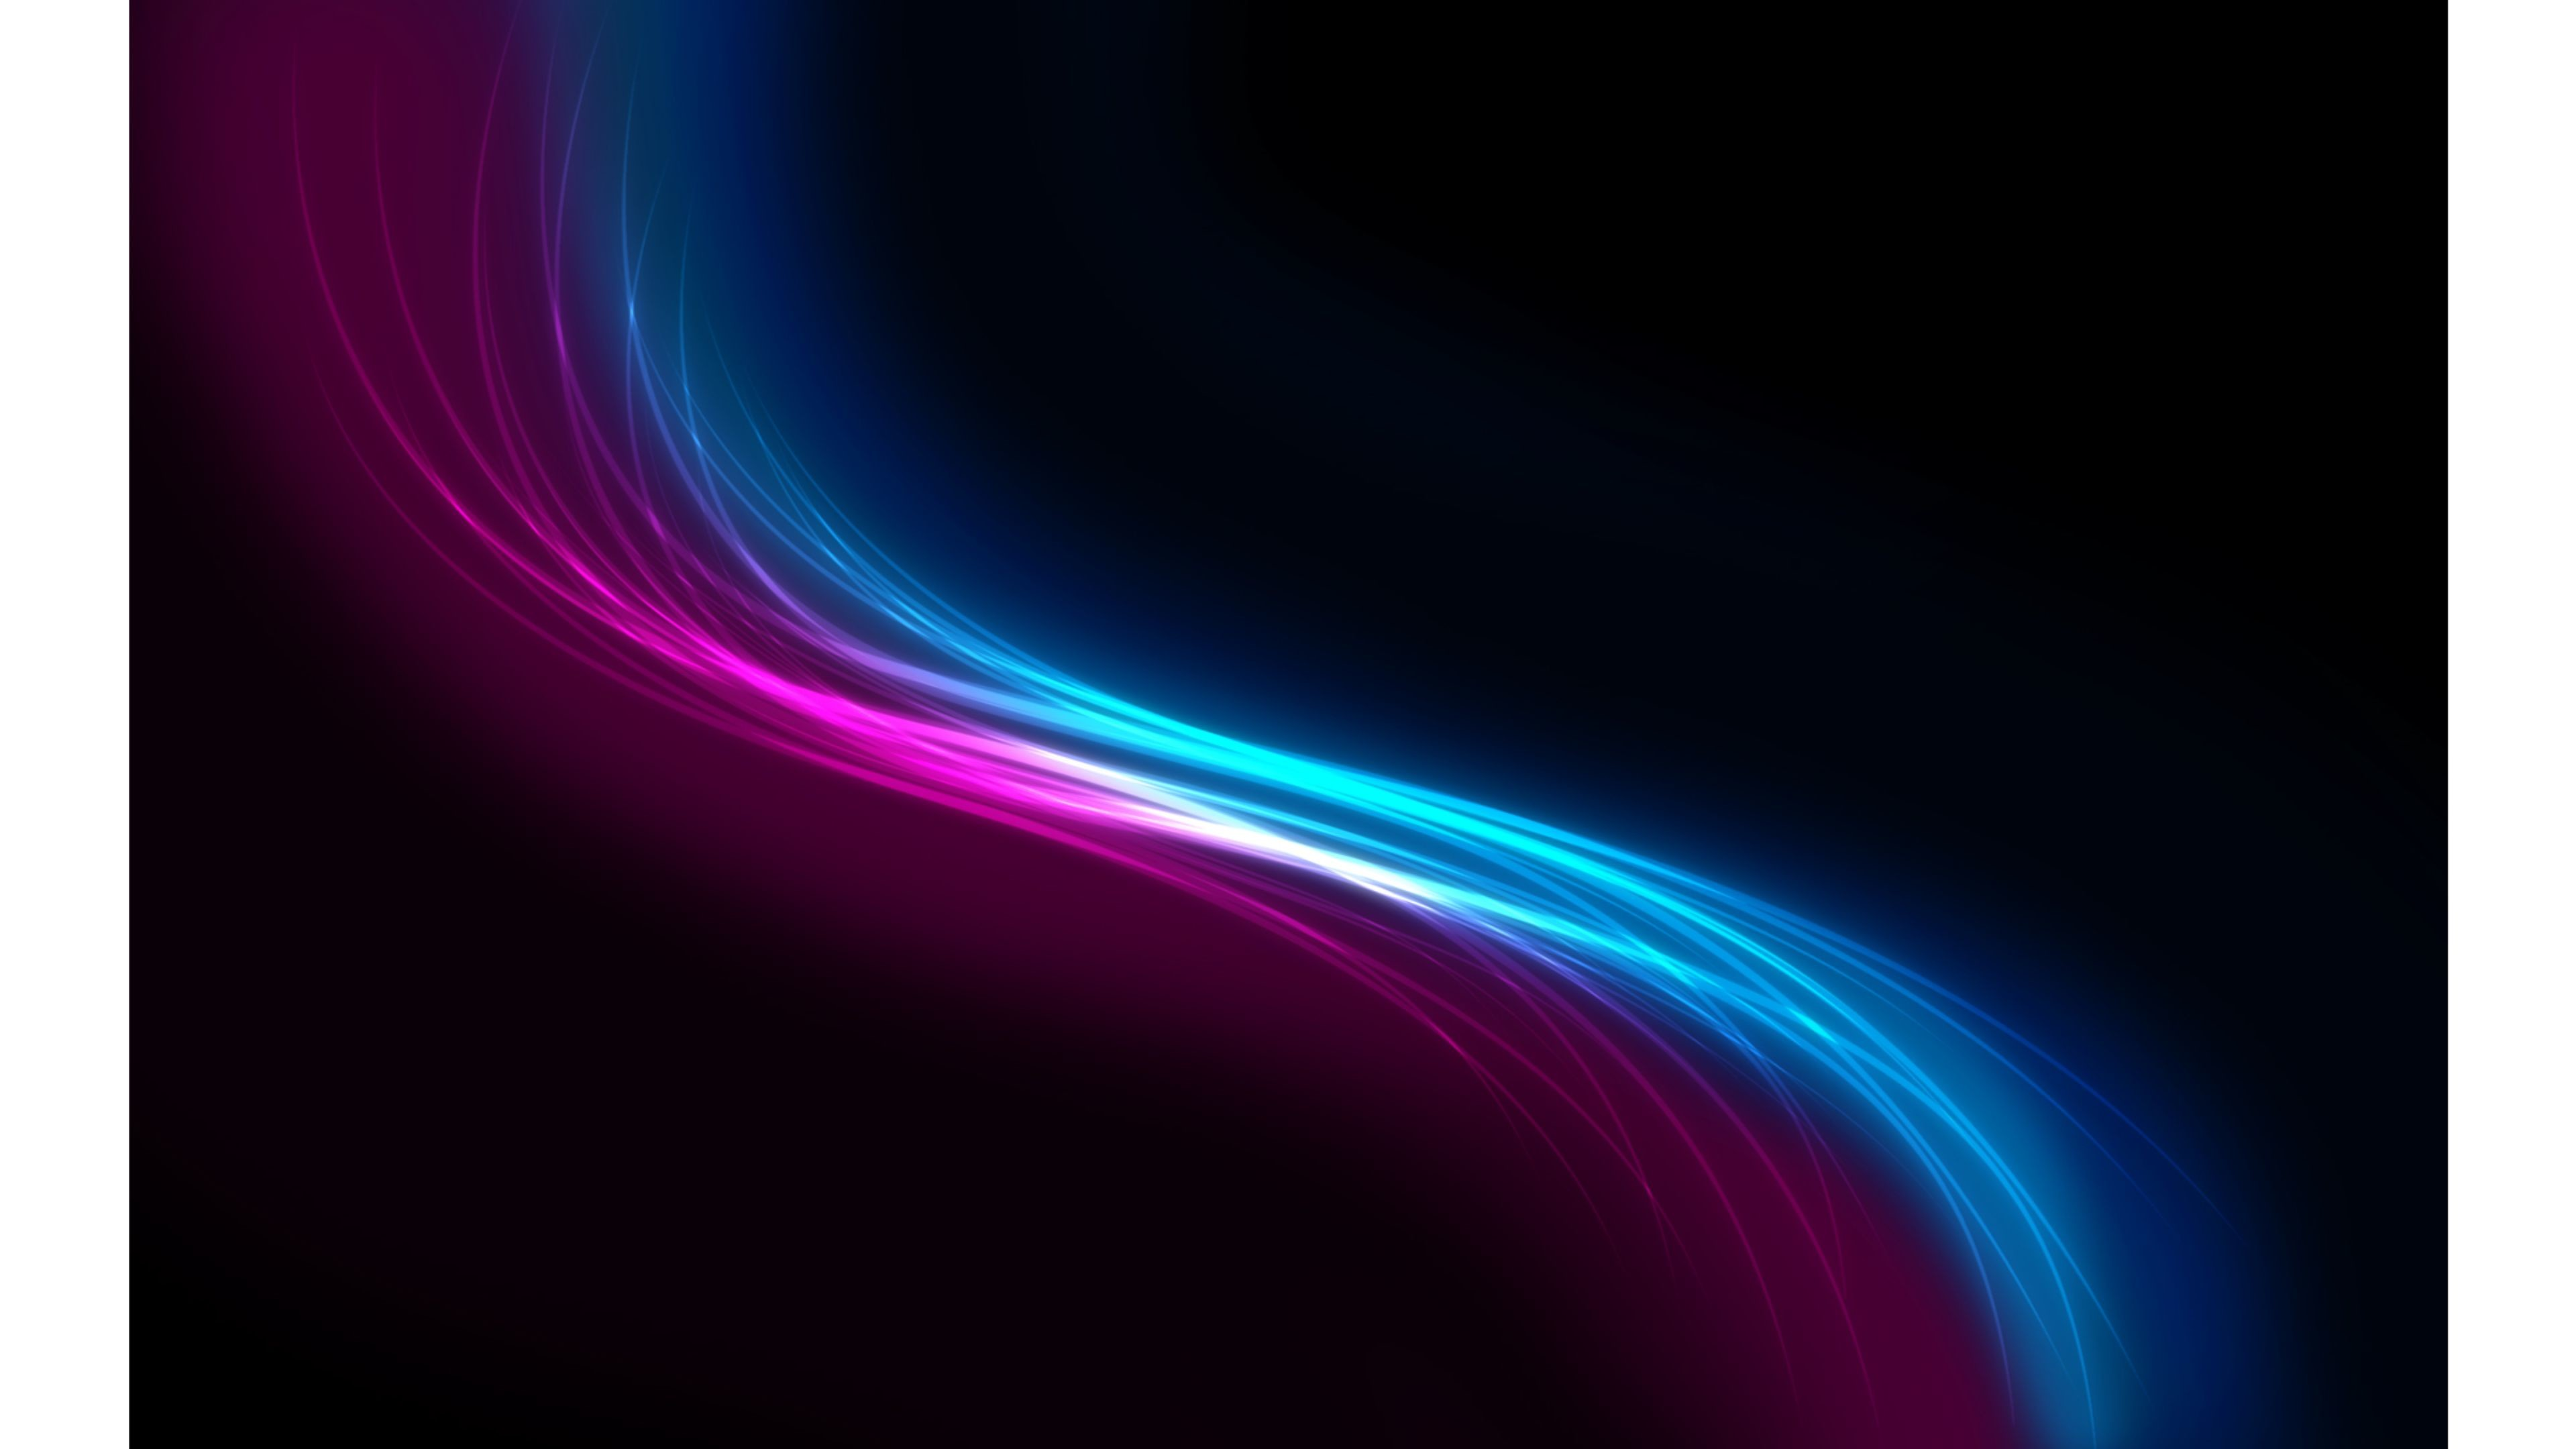 Wave 4K Abstract Wallpapers | Free 4K Wallpaper